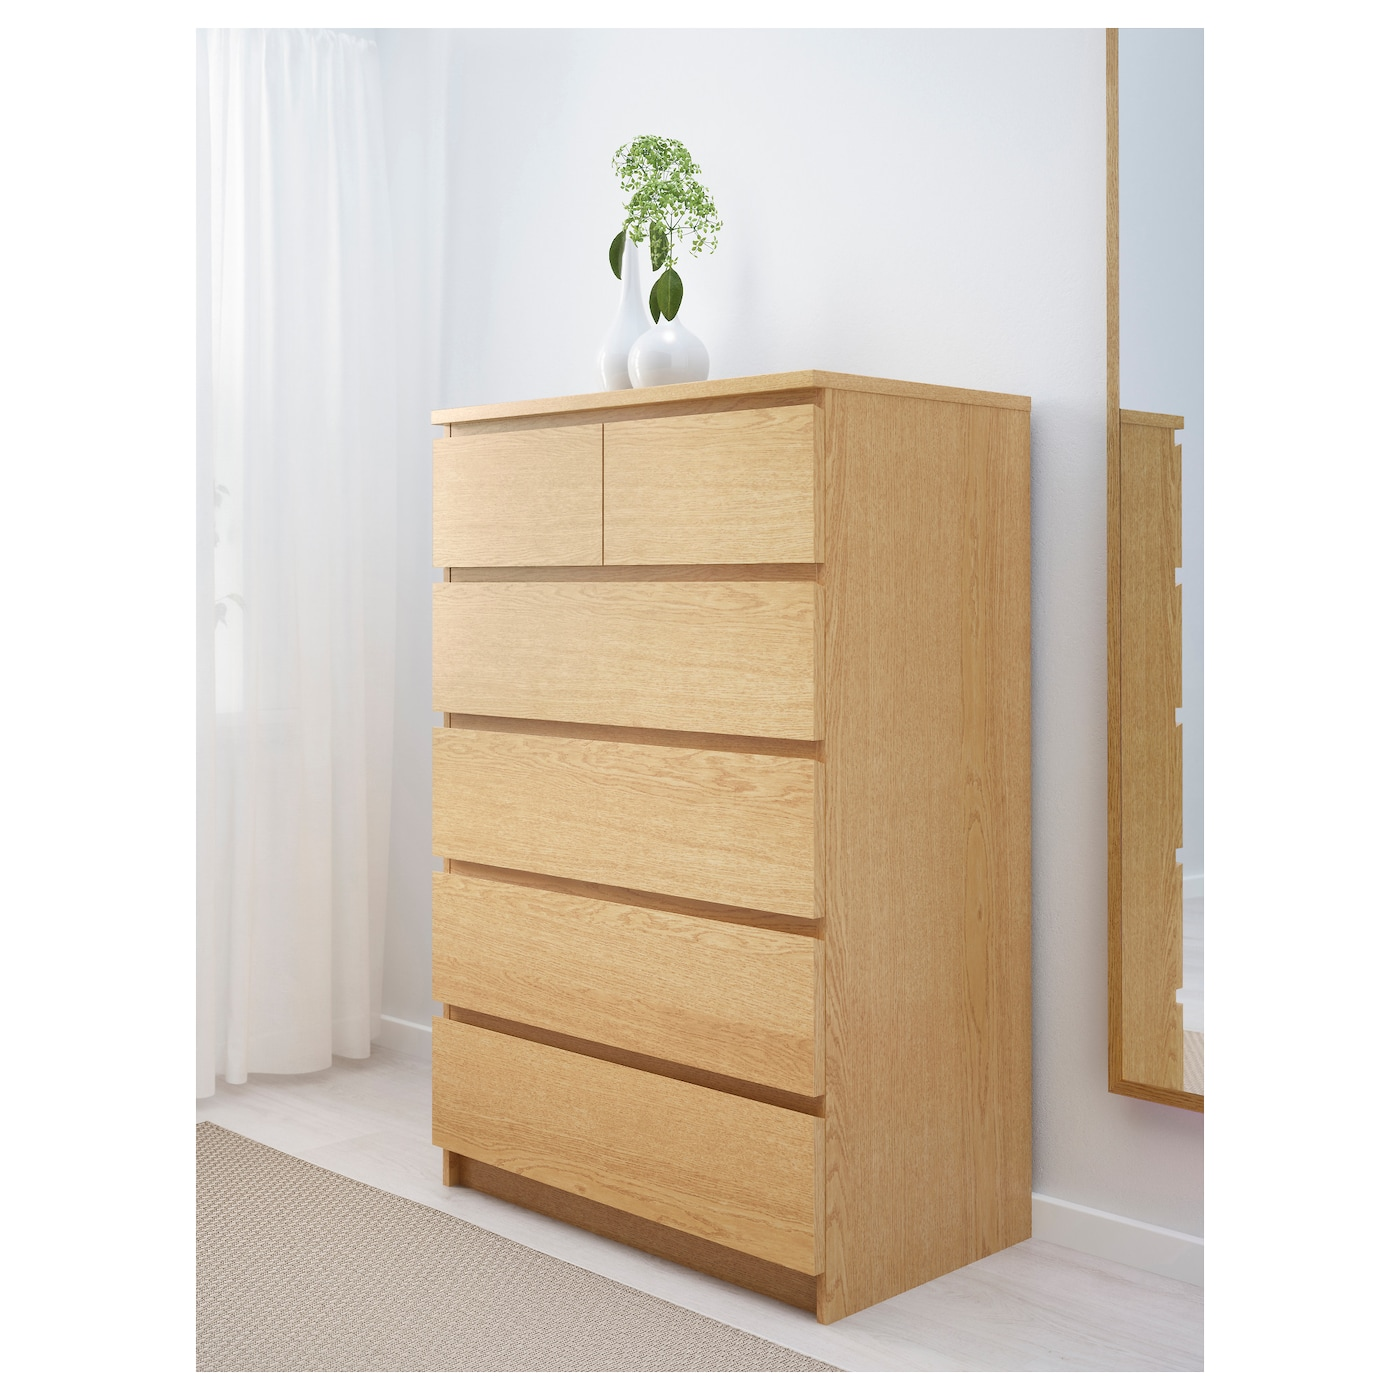 Malm chest of 6 drawers oak veneer 80x123 cm ikea - Ikea malm letto ...